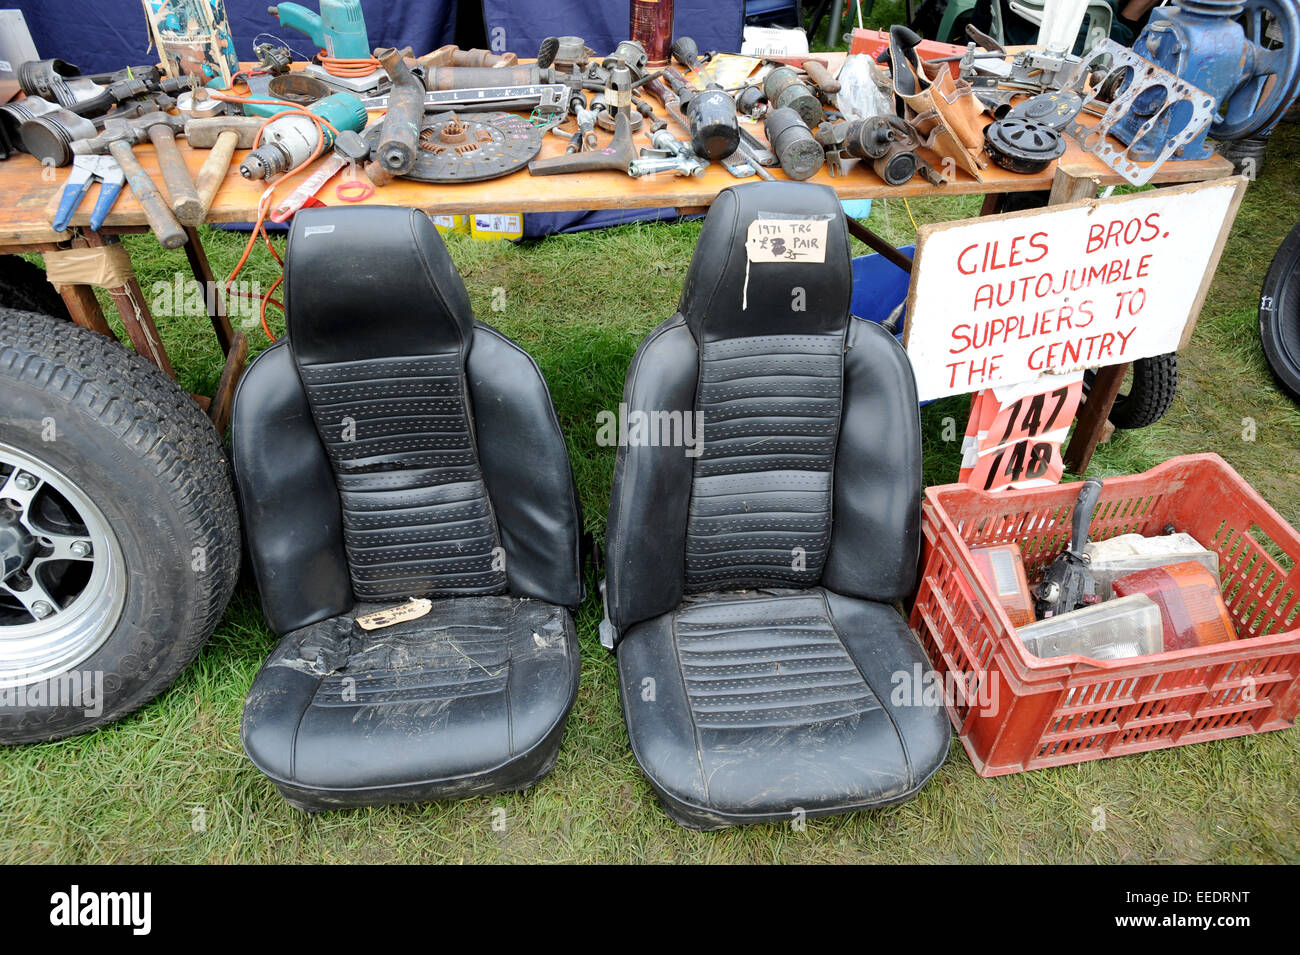 Car seats and other parts for sale at Beaulieu Autojumble, massive ...